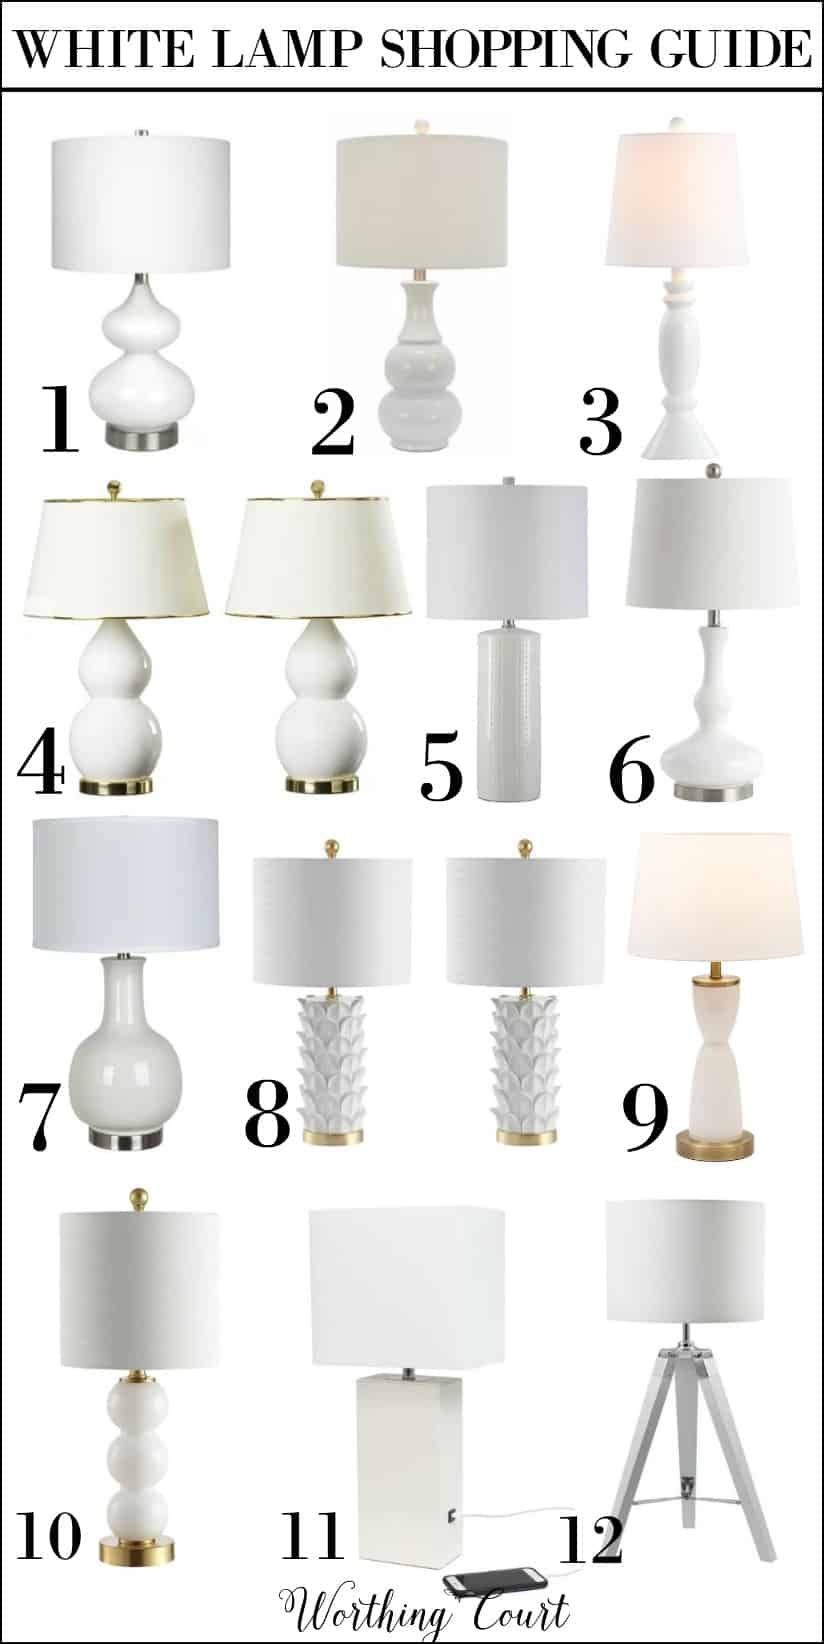 Shopping guide for 12 white table lamps